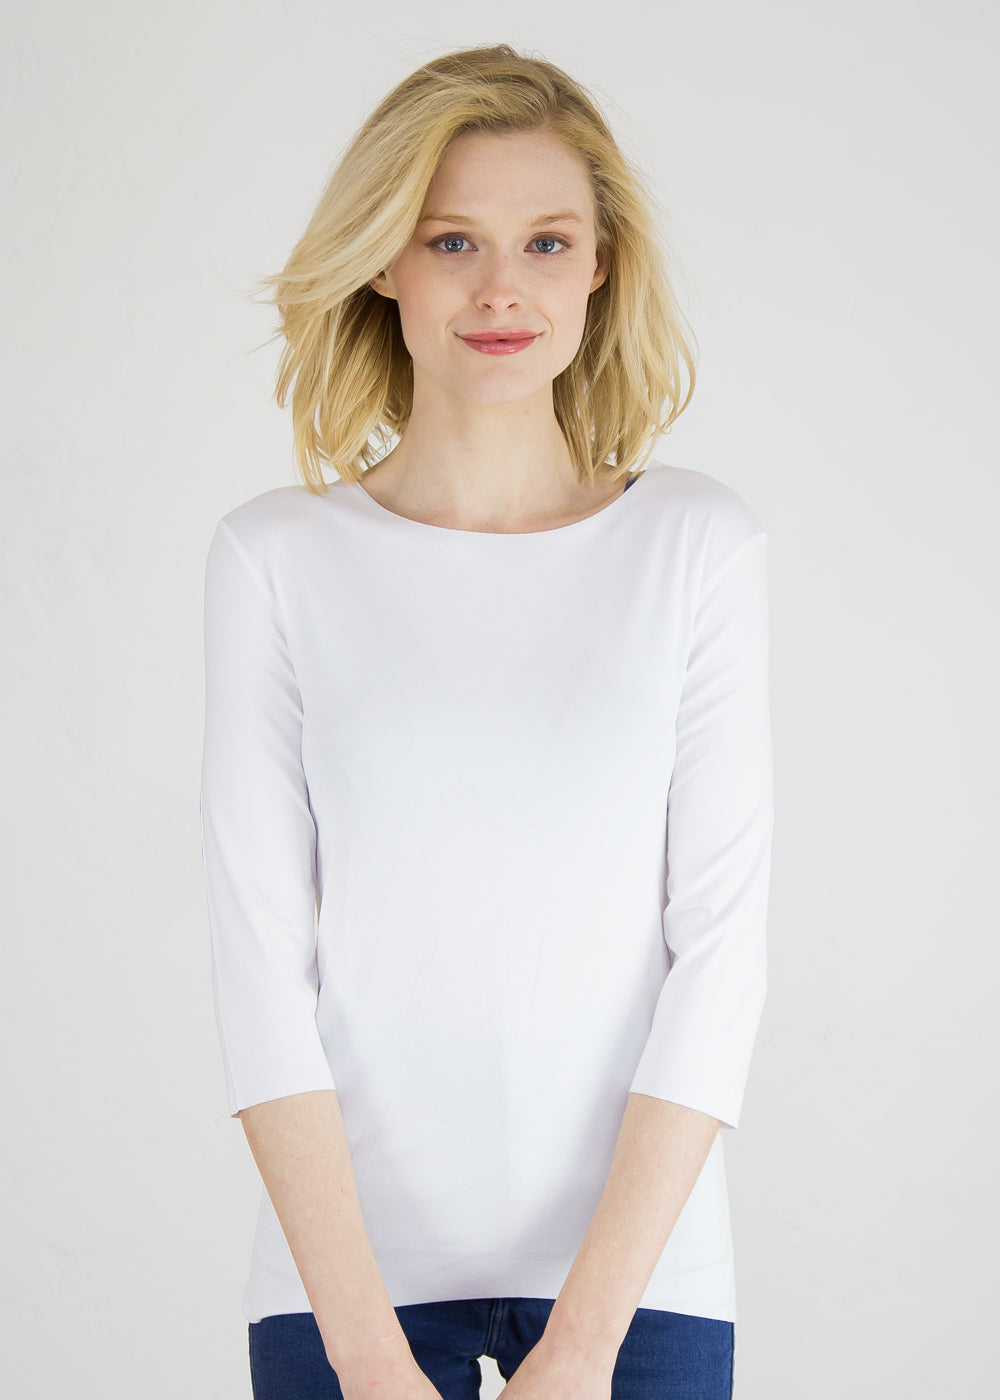 Juliet 3/4 Sleeve Top